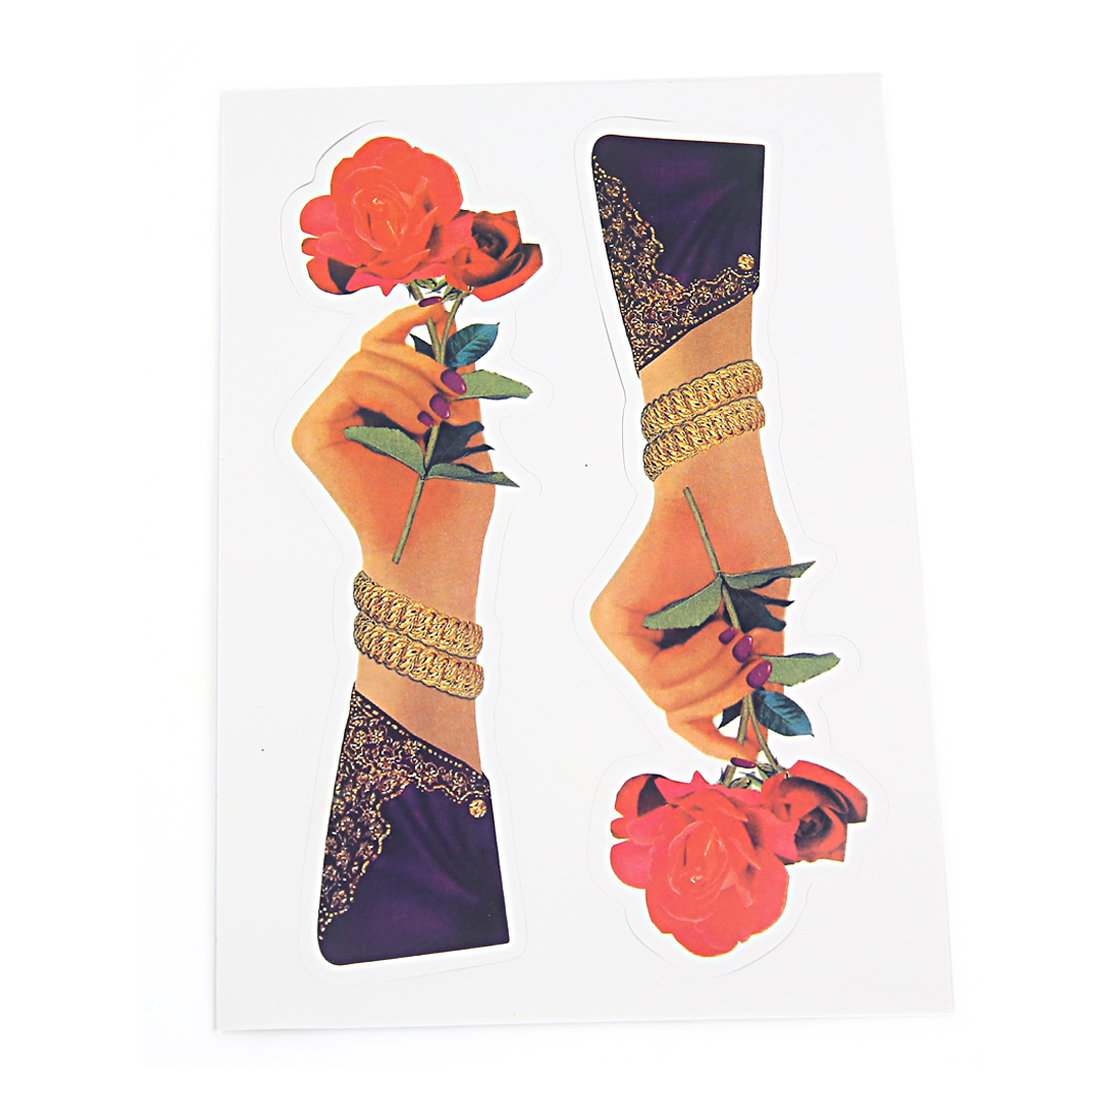 Hand Holding Flower Print Stick-on Decorative Sticker Decal for Car